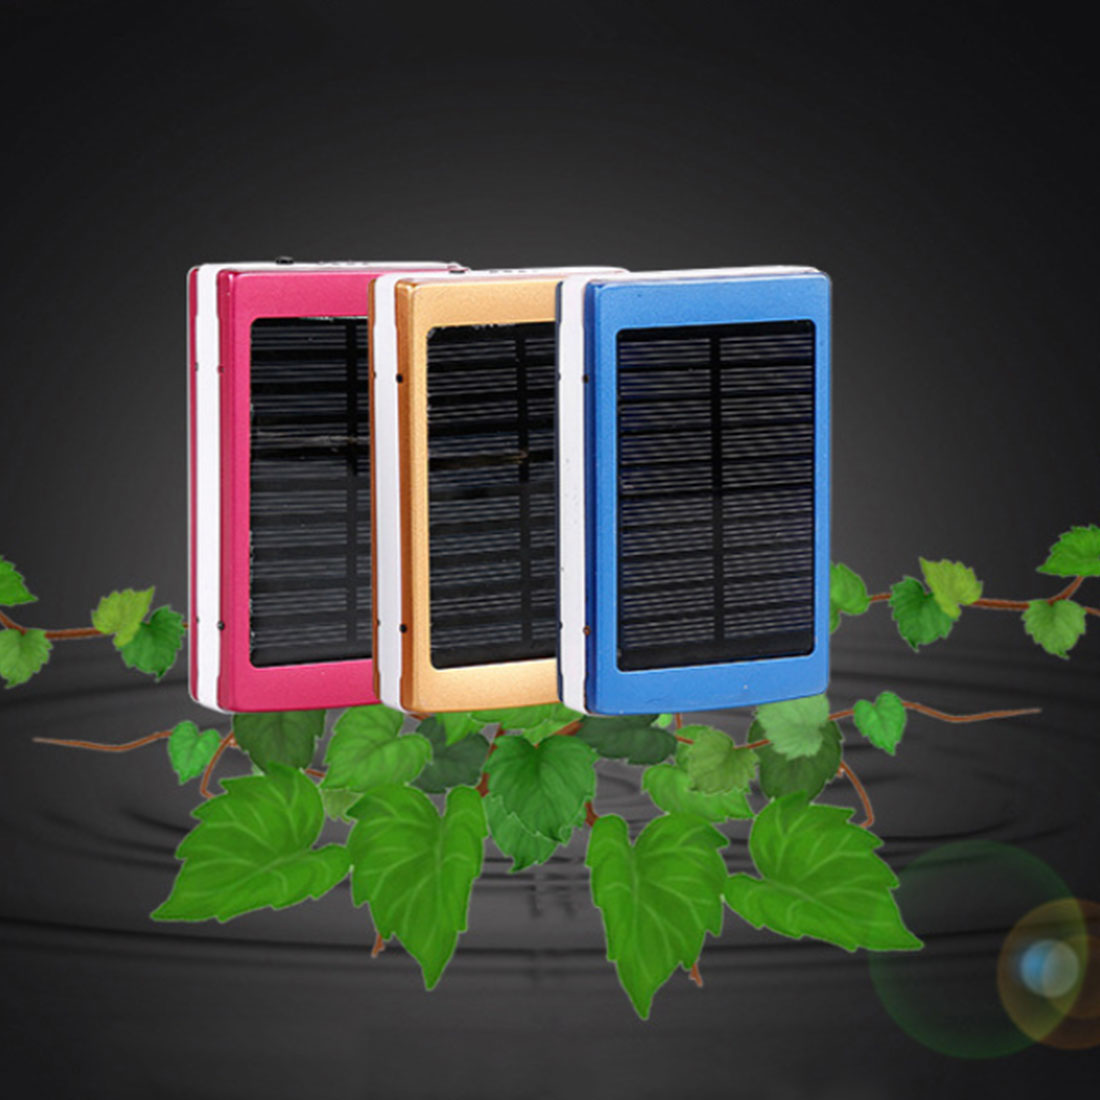 Dual USB LED PCBA Circuit Board Solar Power Panel Home Solar Panel Bank 18650 Battery with LED Counterfeit Light Portable Charge